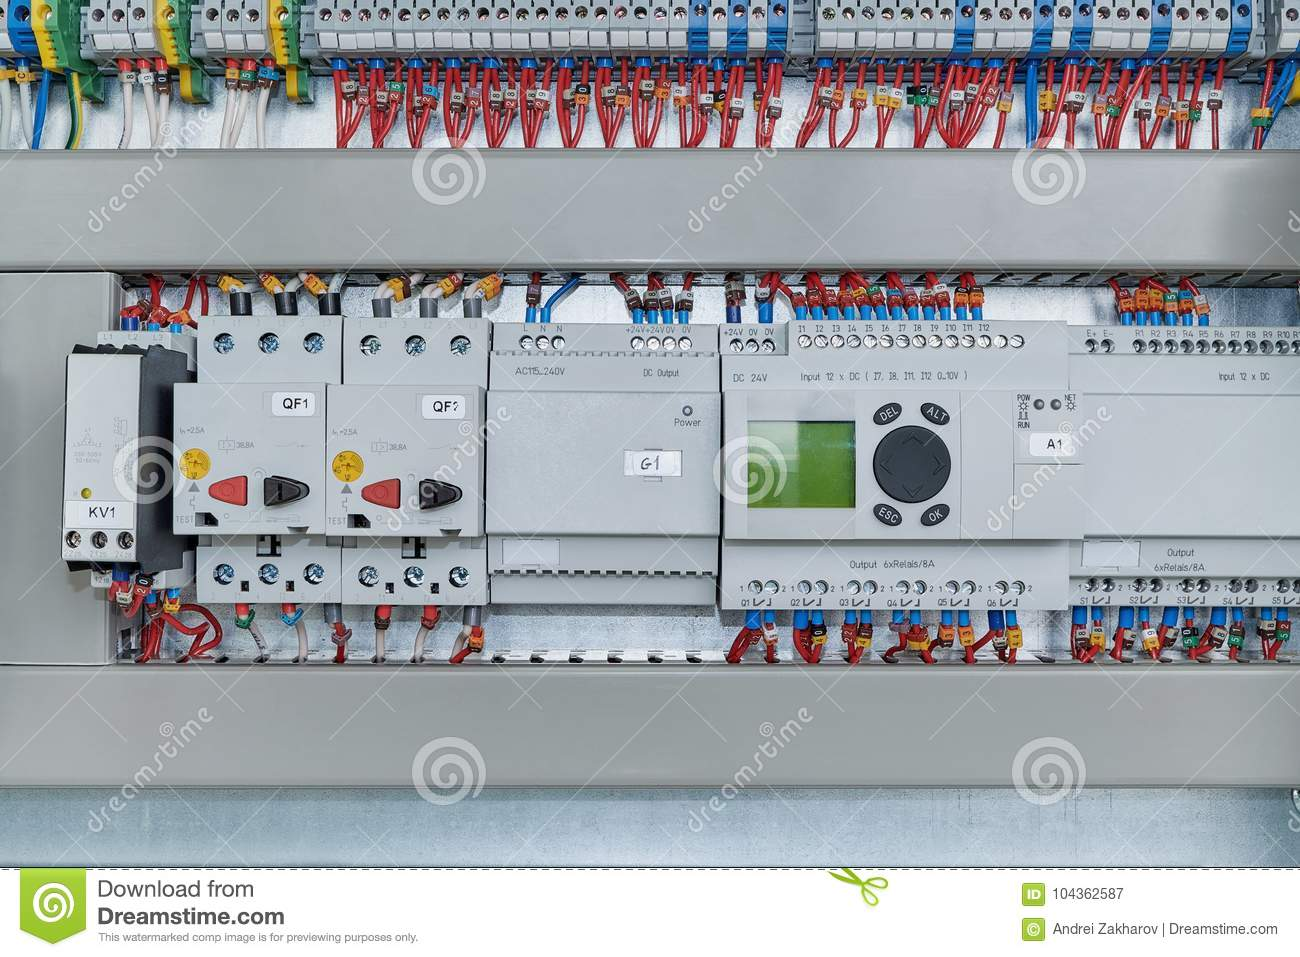 Relays Circuit Breakers Motor Protection And Controllers Extension Relay Used In Breaker Modules